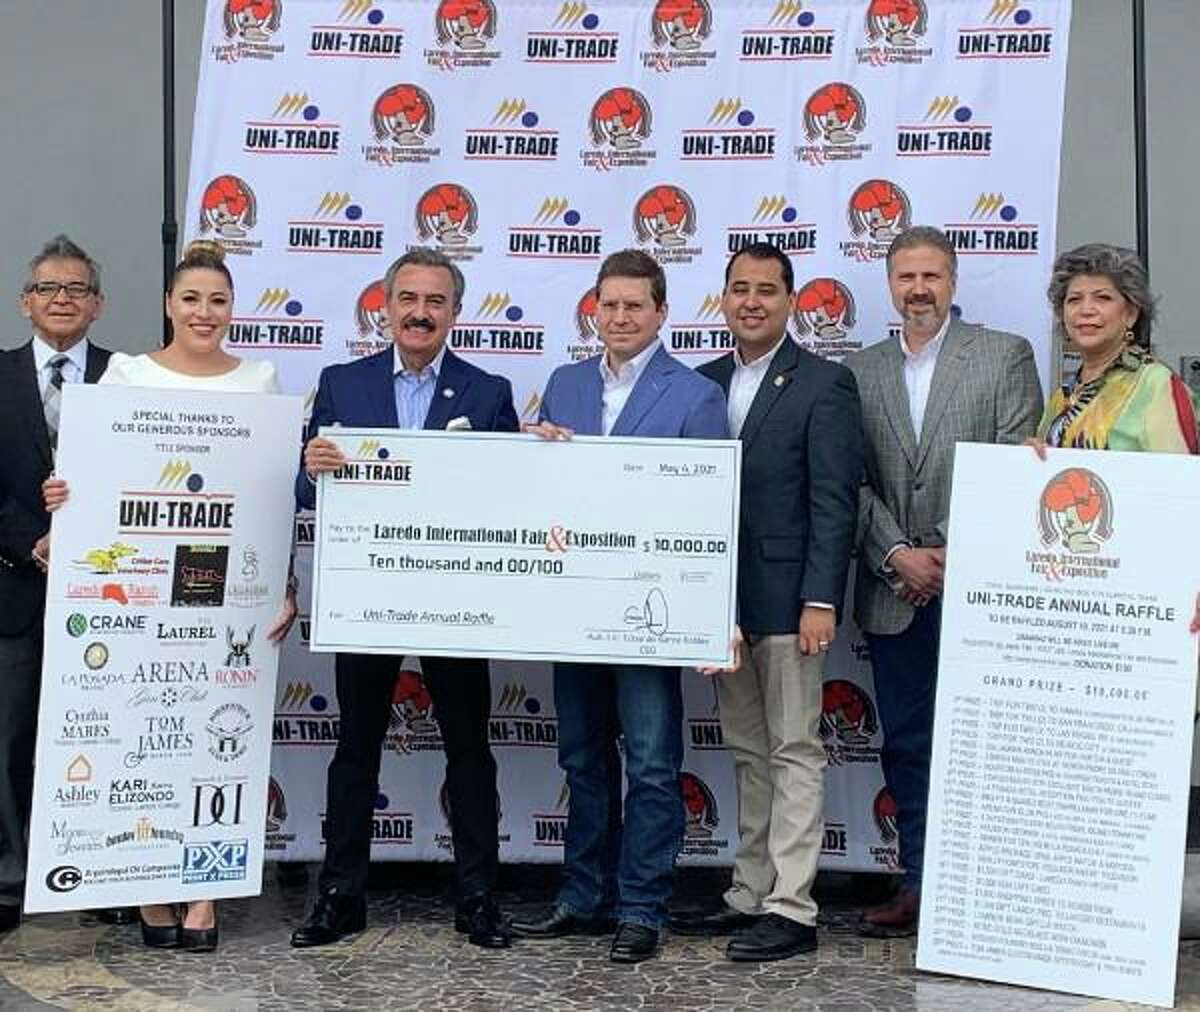 L.I.F.E. announced a raffle to help pay for operation costs for next year along with scholarships, with winners having the chance to win significant prizes.